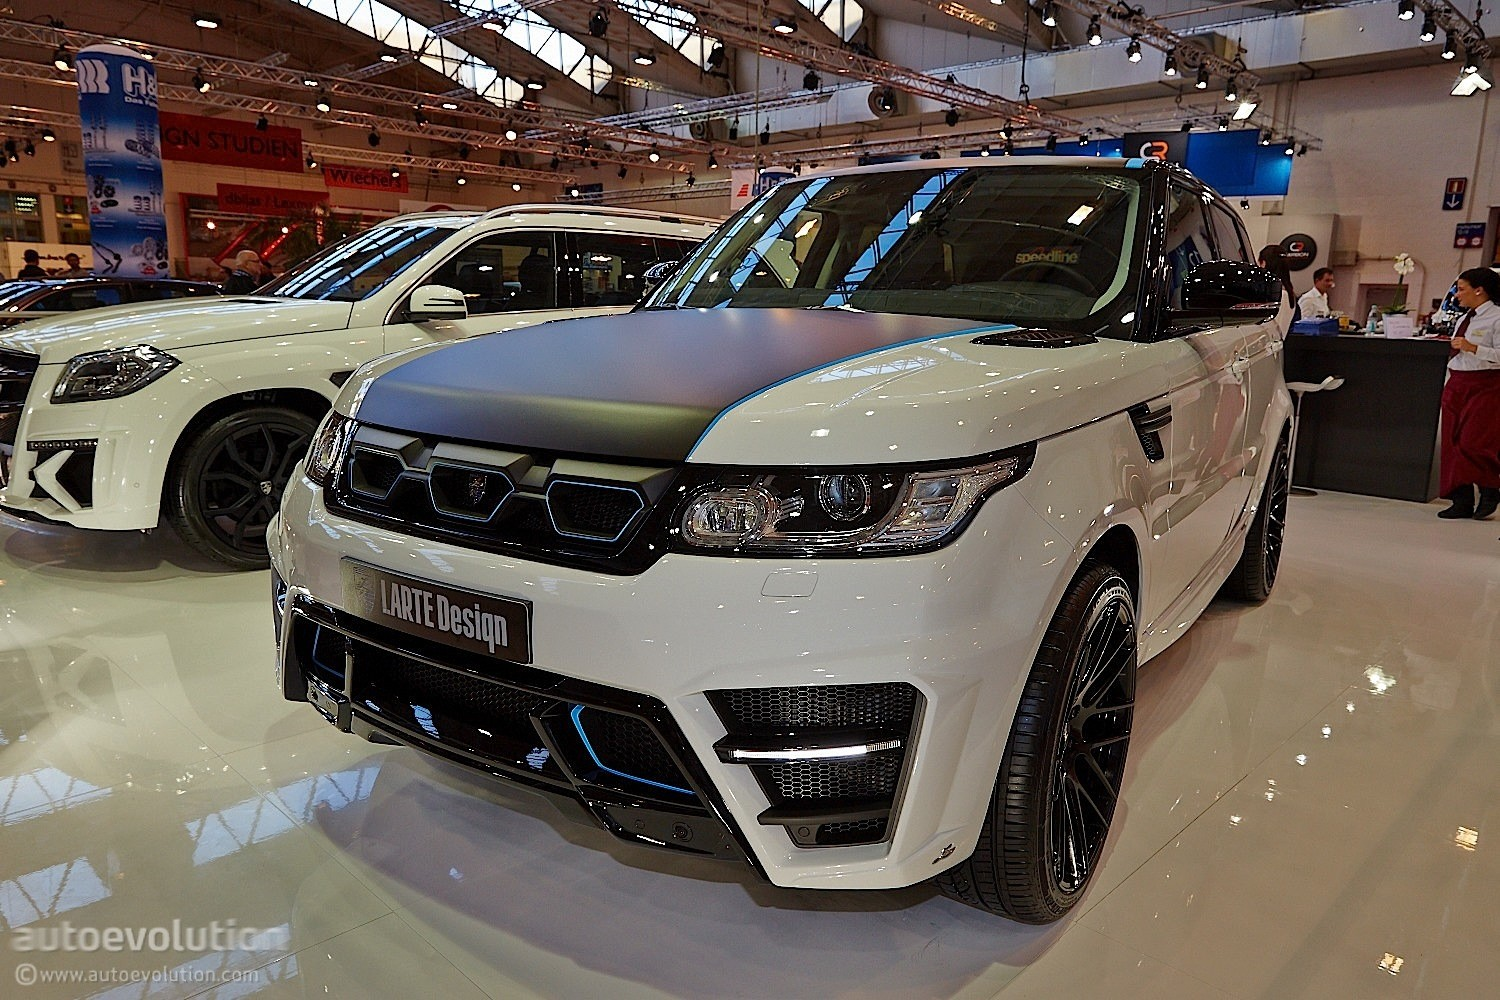 http://s1.cdn.autoevolution.com/images/news/gallery/larthe-design-range-rover-sport-looks-like-its-been-drilled-essen-2014-live-photos_1.jpg